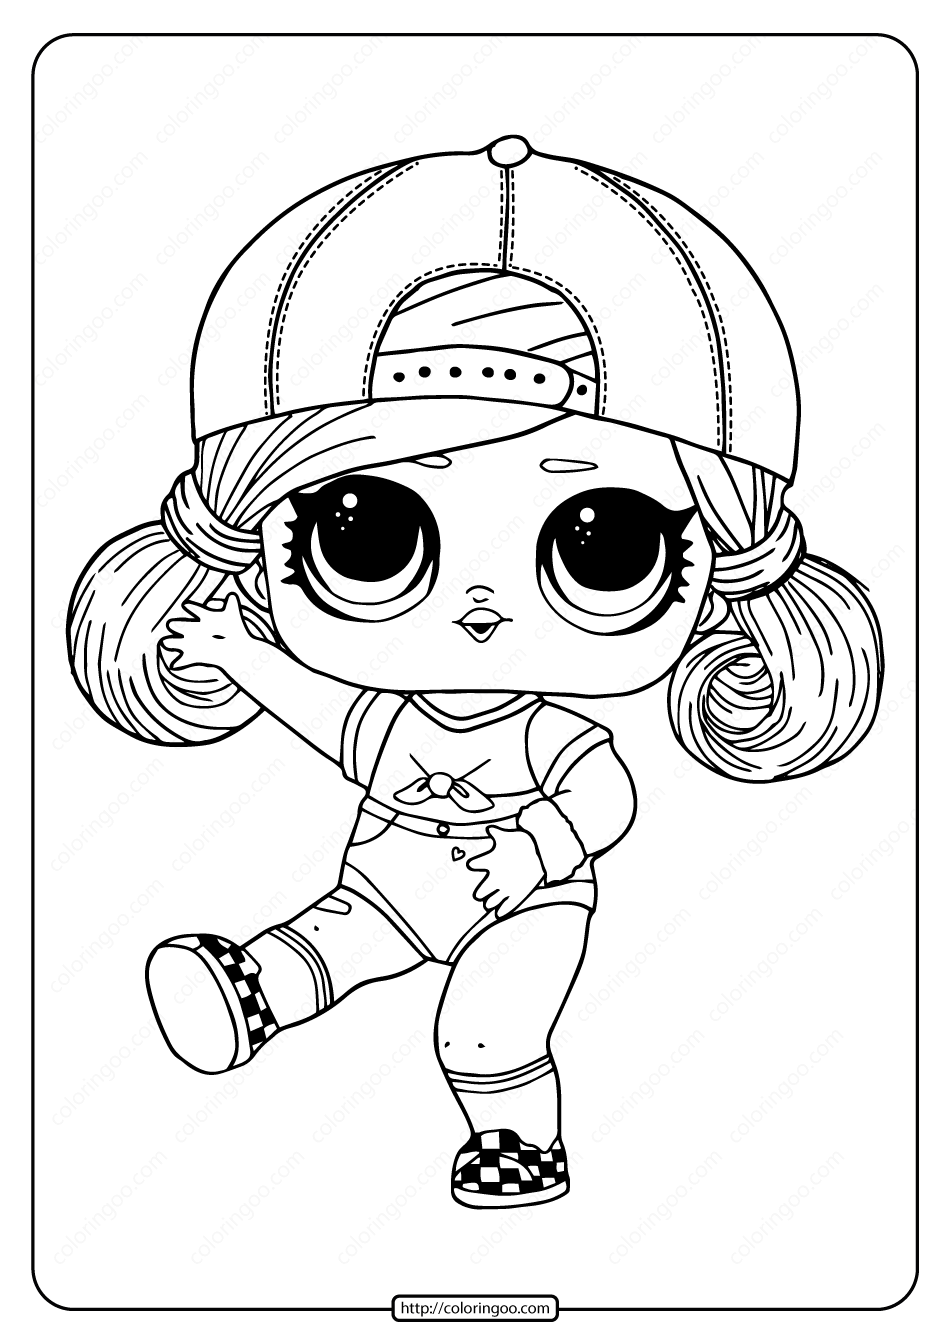 Lol Surprise Hairgoals Sk8er Grrrl Coloring Page Cool Coloring Pages Cartoon Coloring Pages Cute Coloring Pages